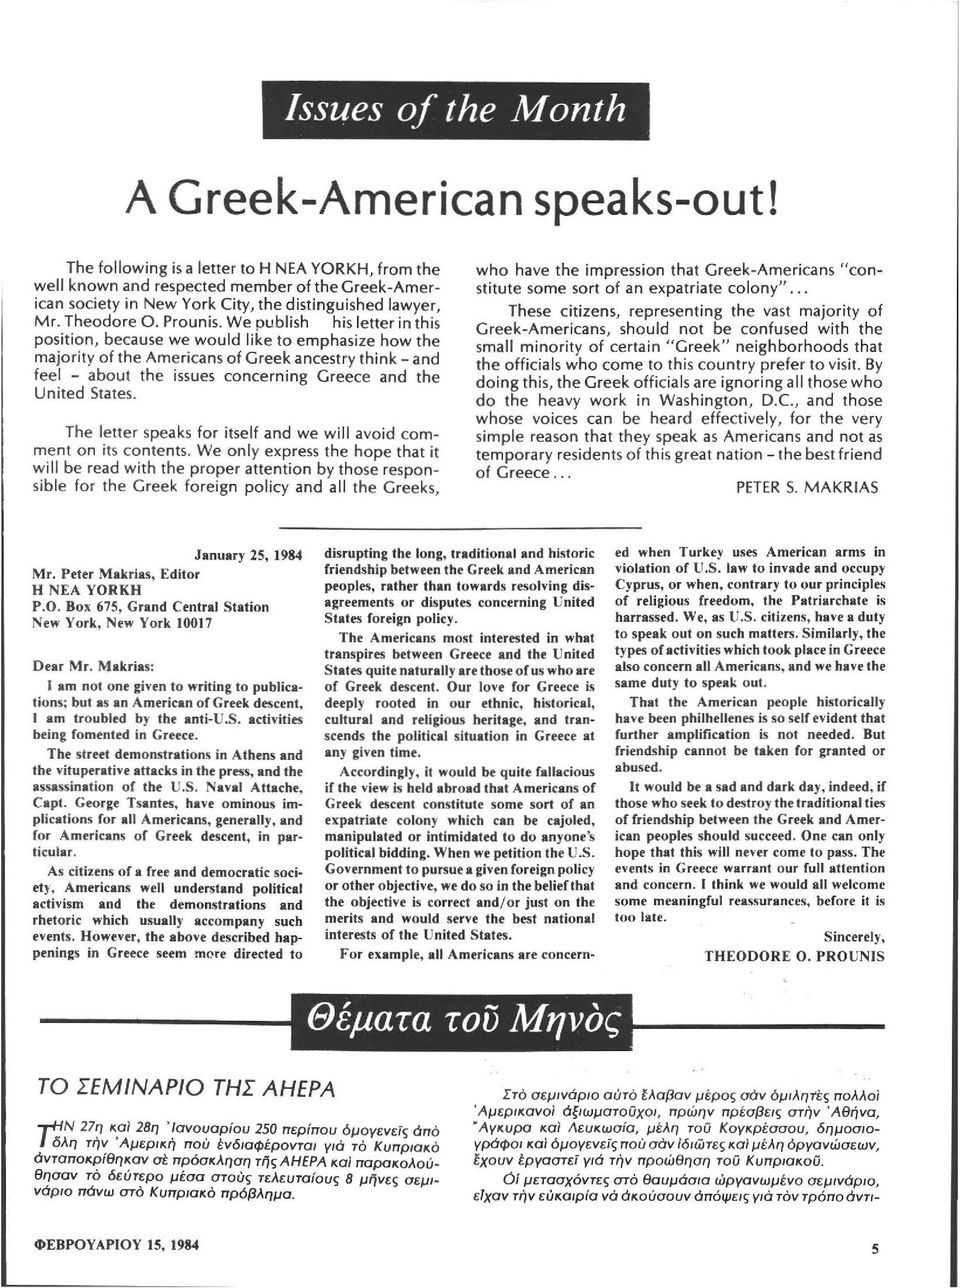 We publish his letter in this position, because we would like to emphasize how the majority of the Americans of Greek ancestry think- and feel - about the issues concerning Greece and the United